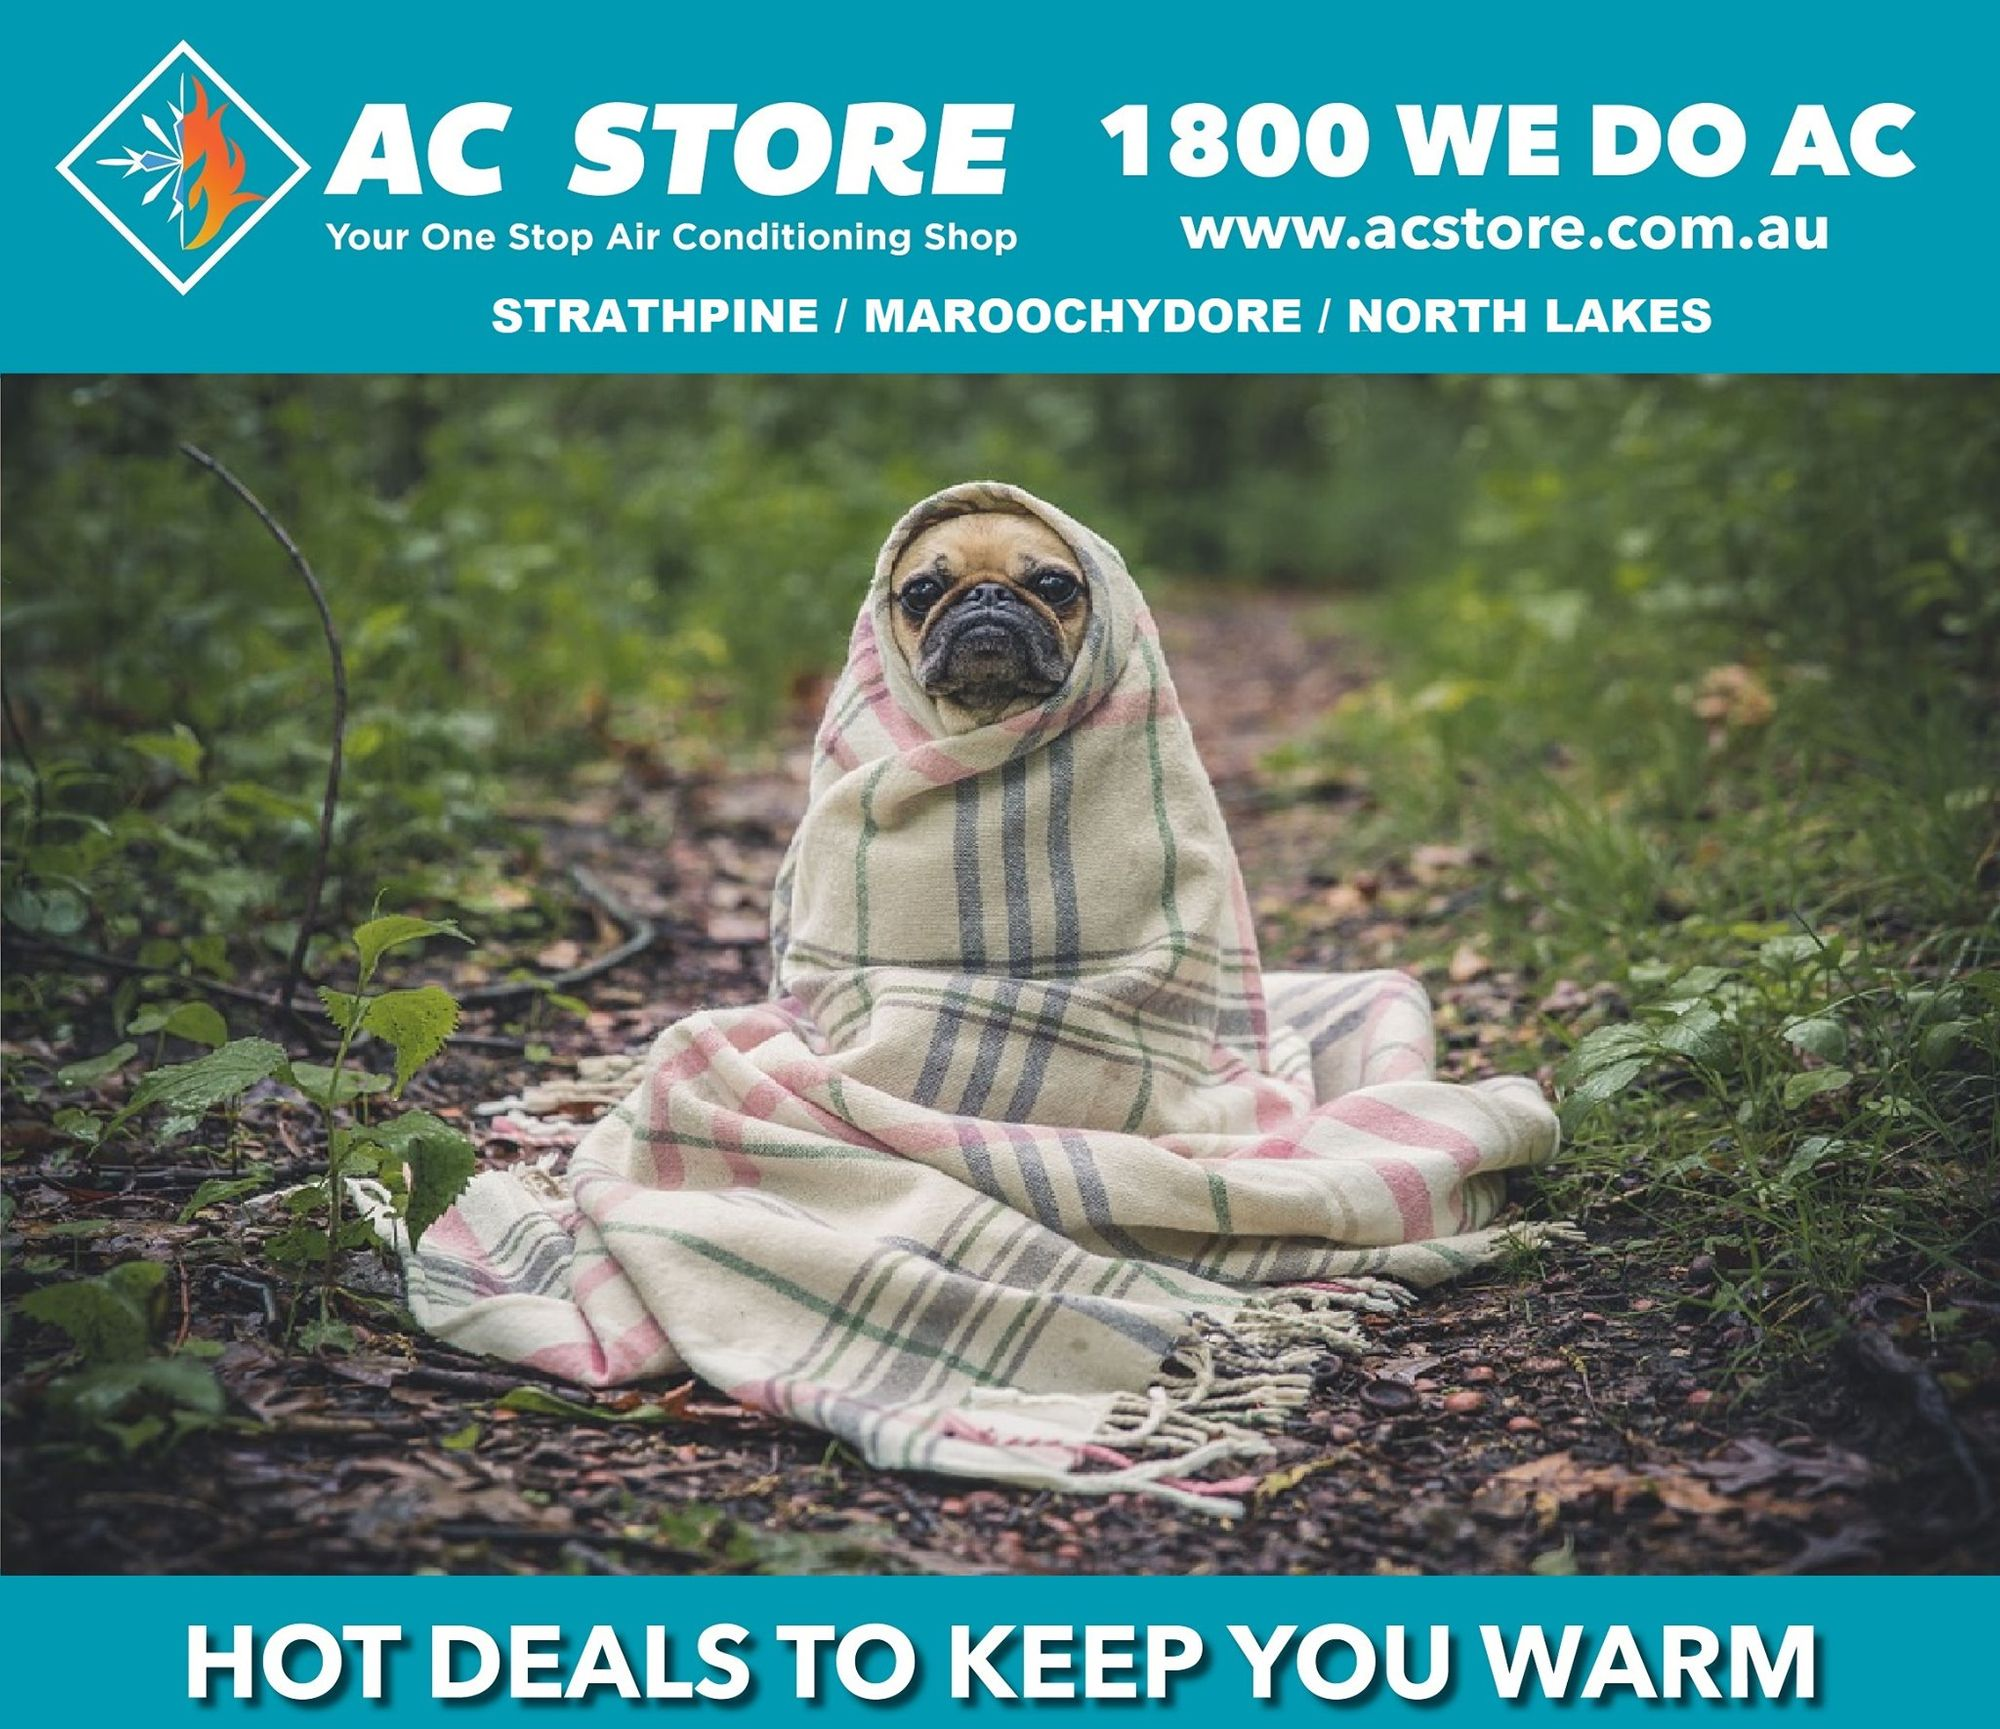 AC Store. Your onestop Air Conditioning Shop for HOT